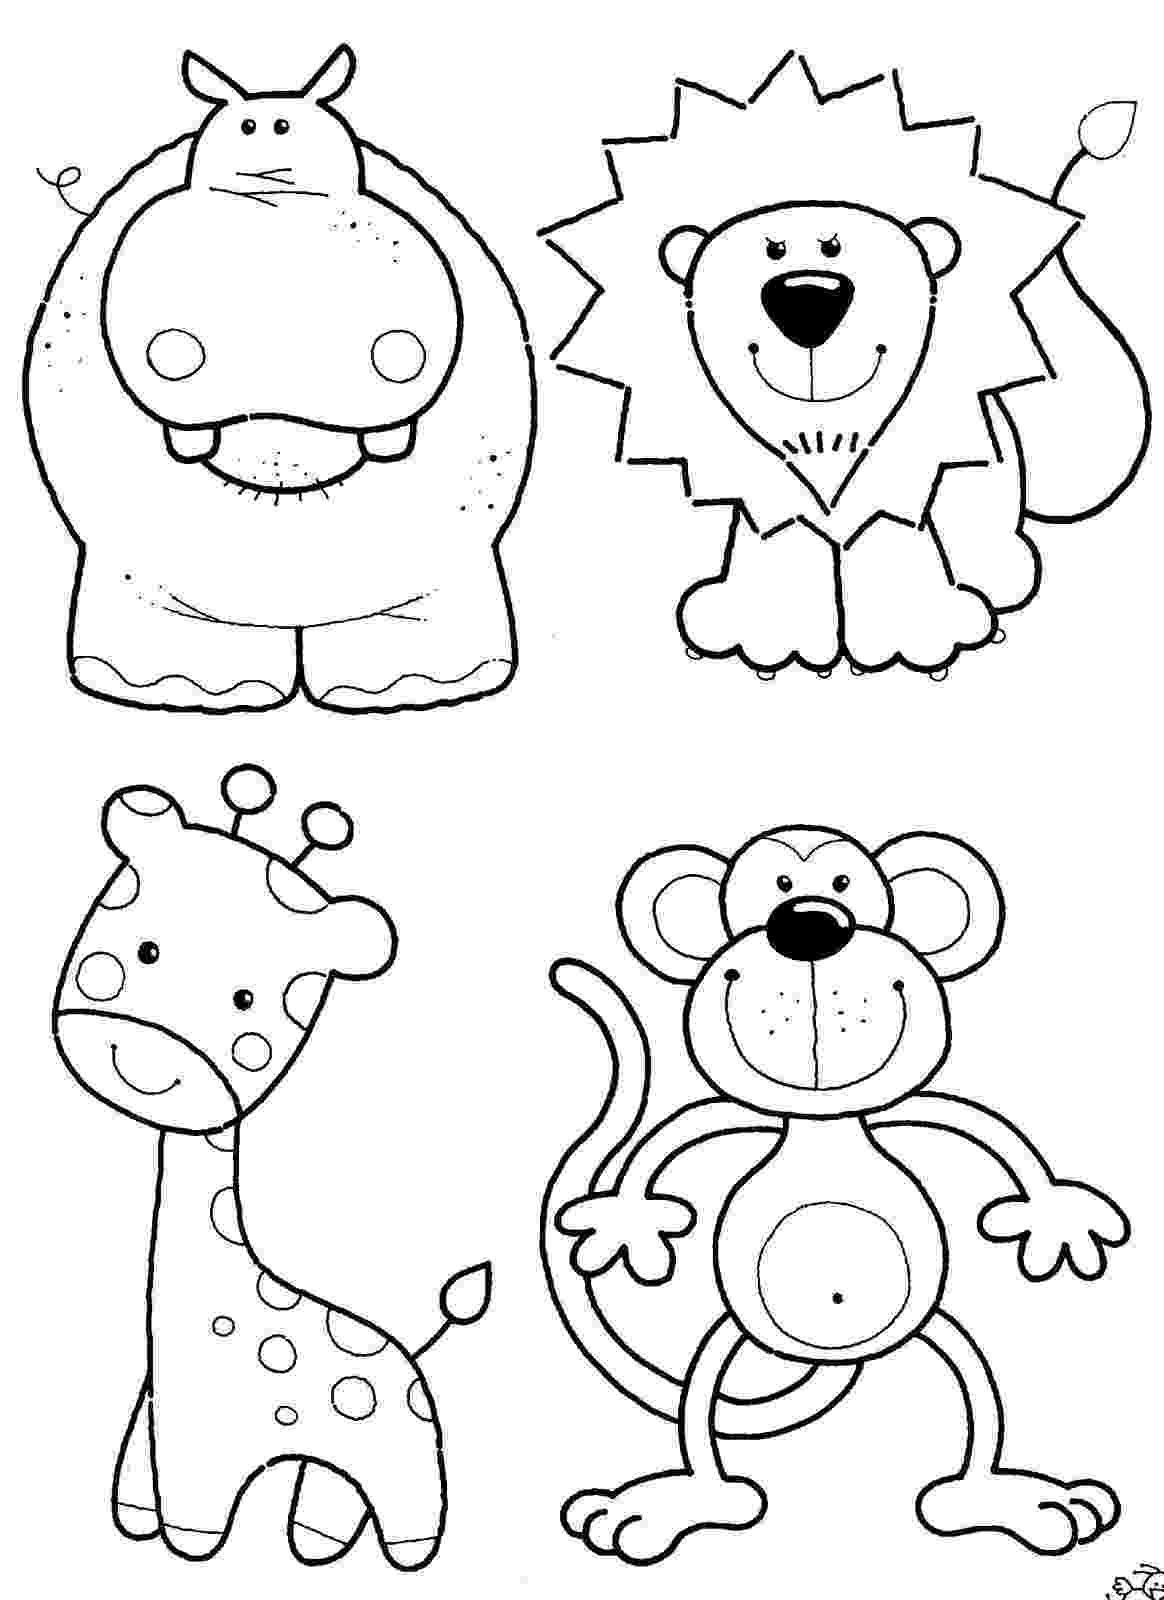 animal coloring pages toddlers cartoon animals coloring pages for kids gtgt disney coloring pages animal coloring toddlers